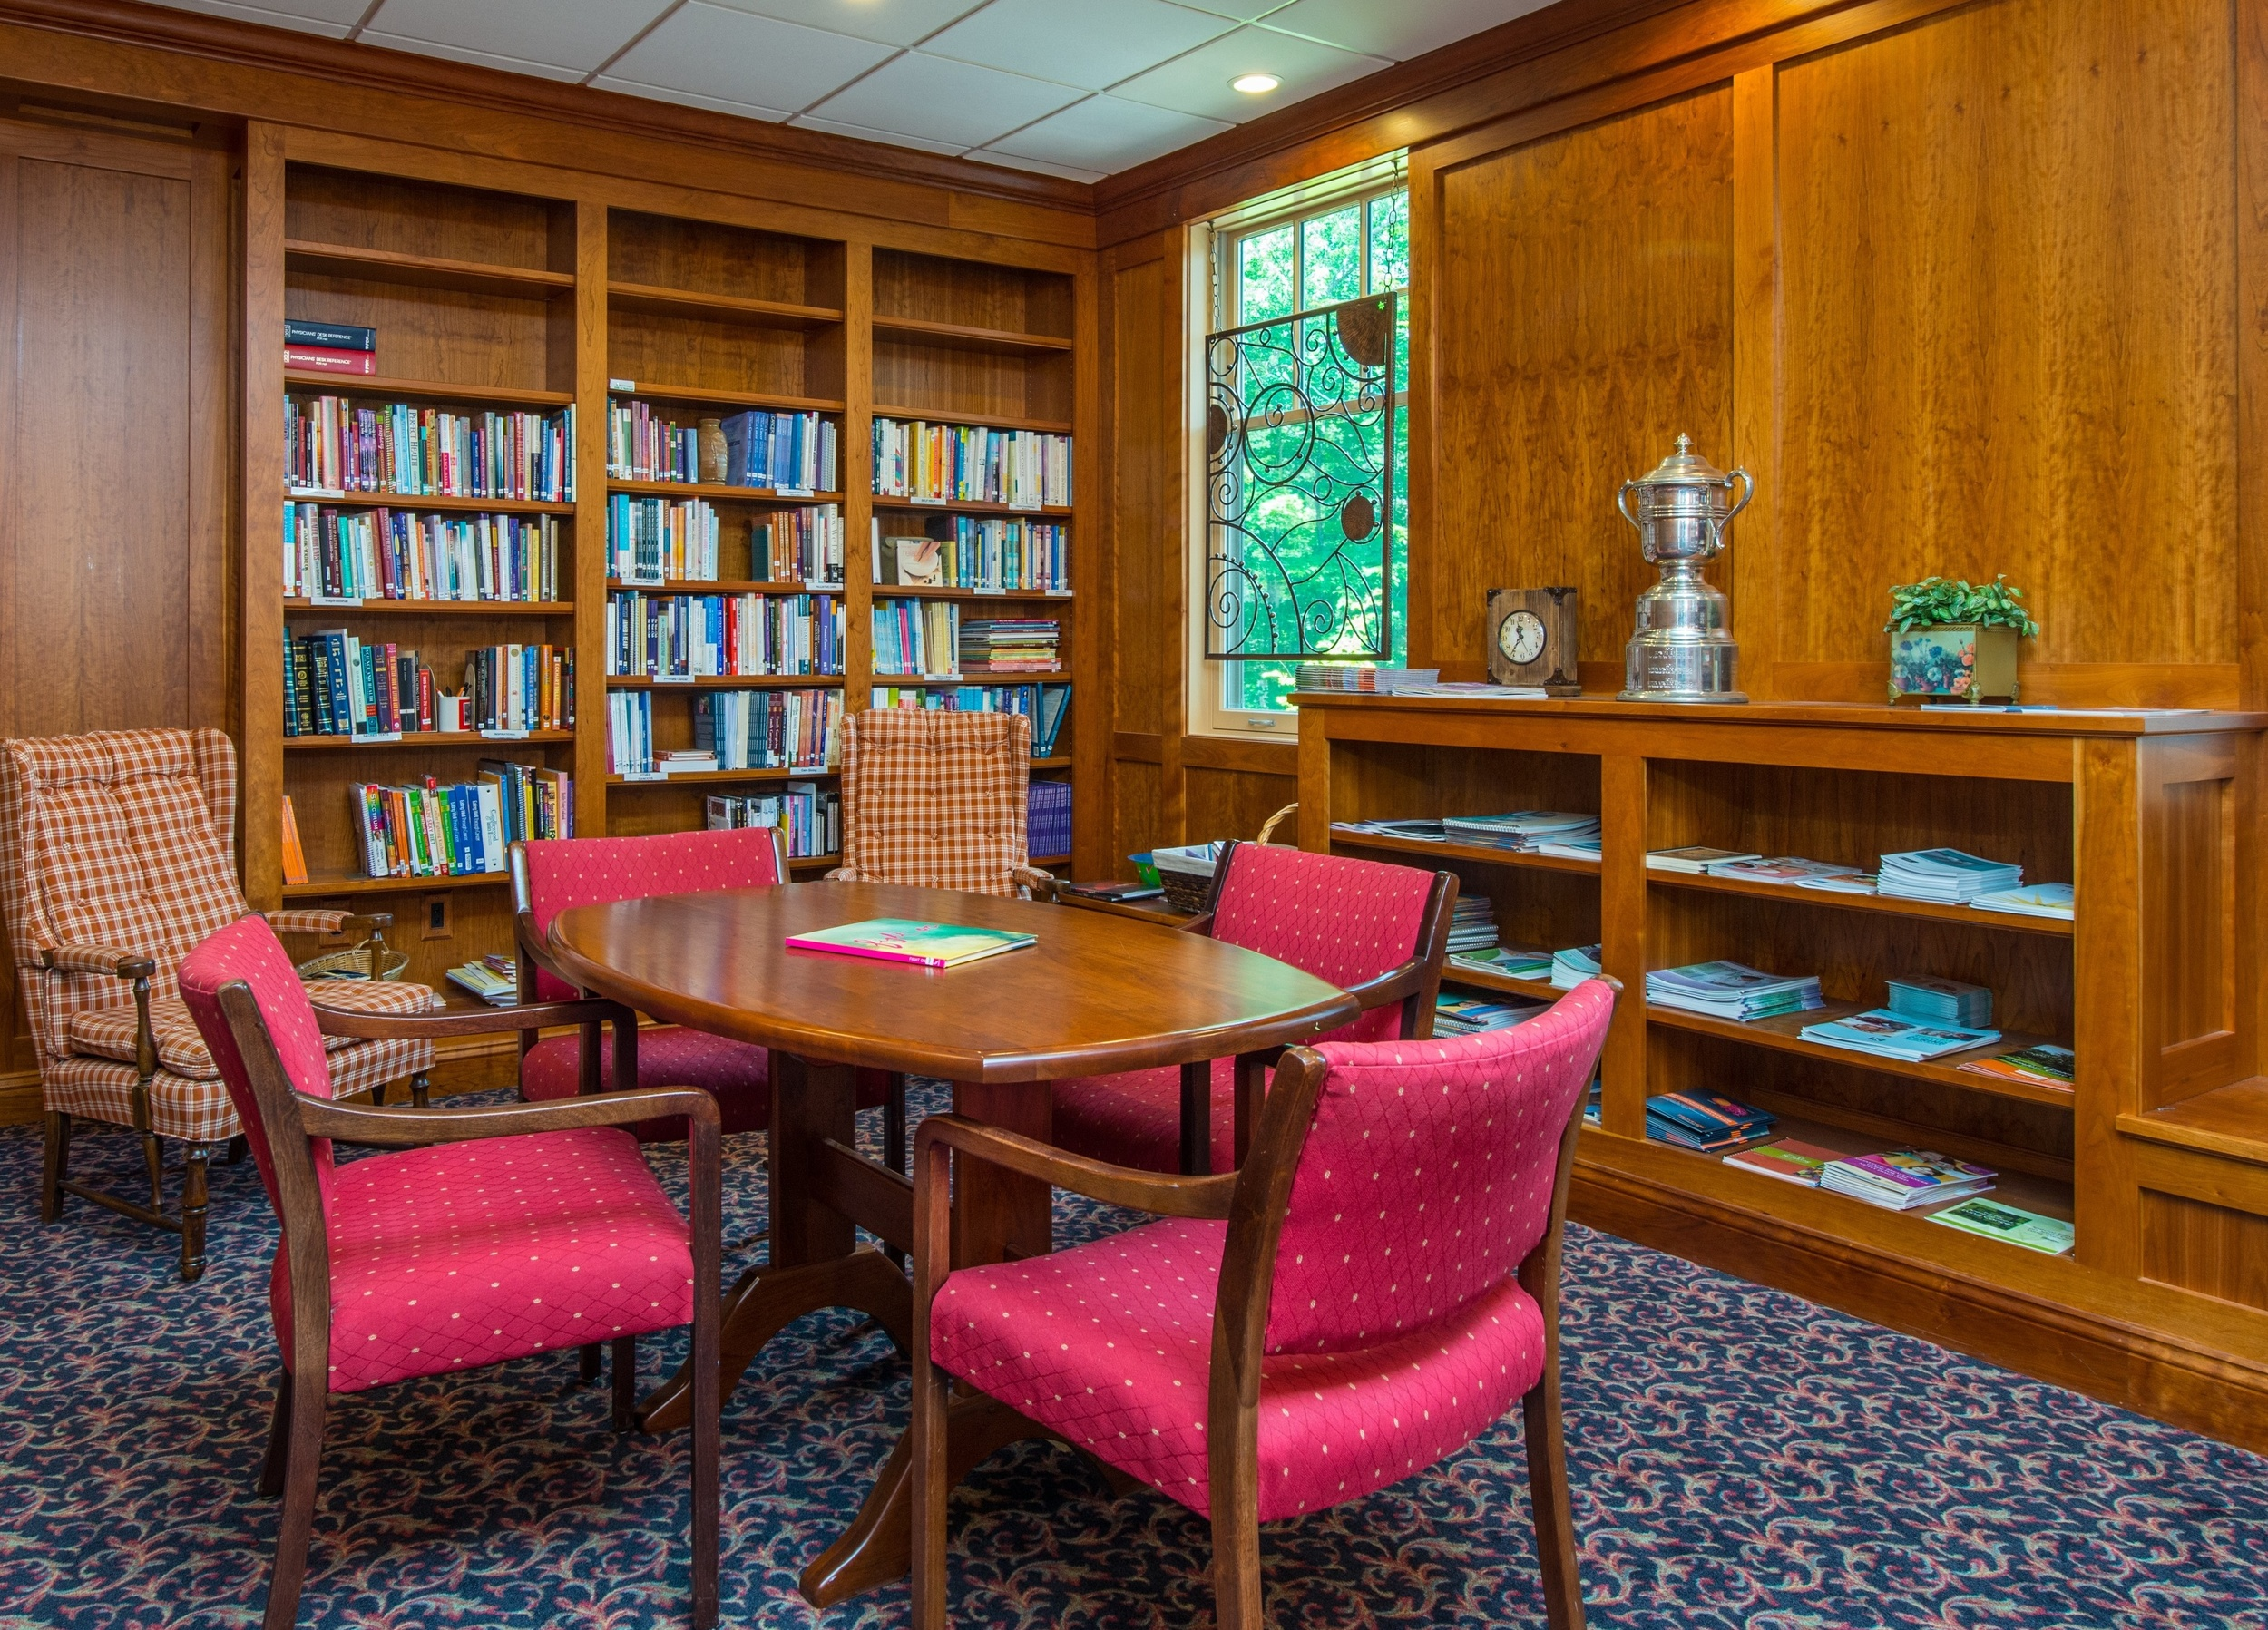 The Robert Santore library is a source of information and inspiration.